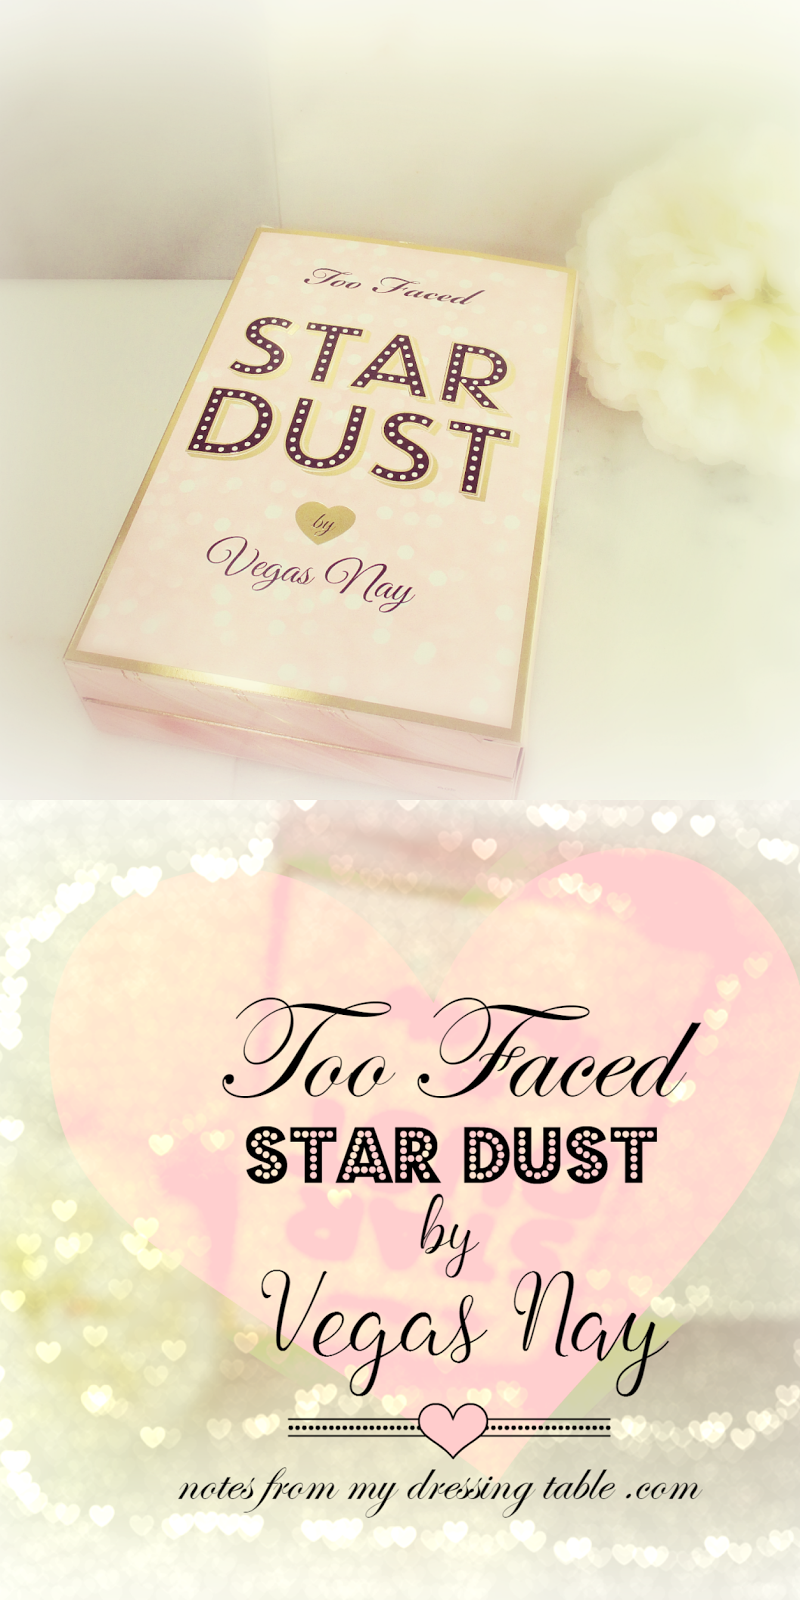 Too Faced Star Dust by Vegas Nay notesfrommydressingtable.com